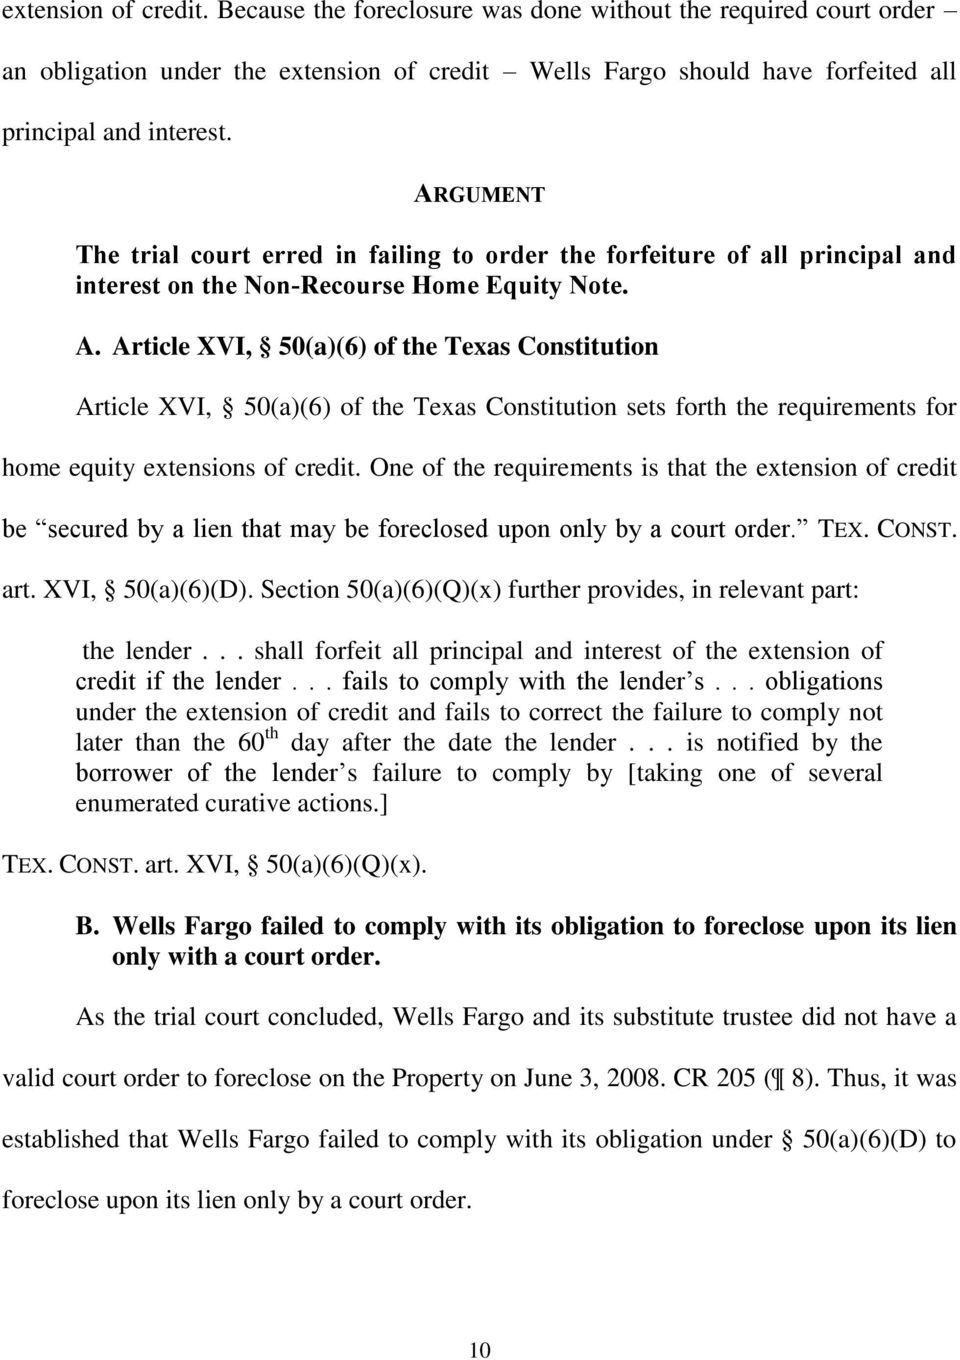 Article XVI, 50(a)(6) of the Texas Constitution Article XVI, 50(a)(6) of the Texas Constitution sets forth the requirements for home equity extensions of credit.